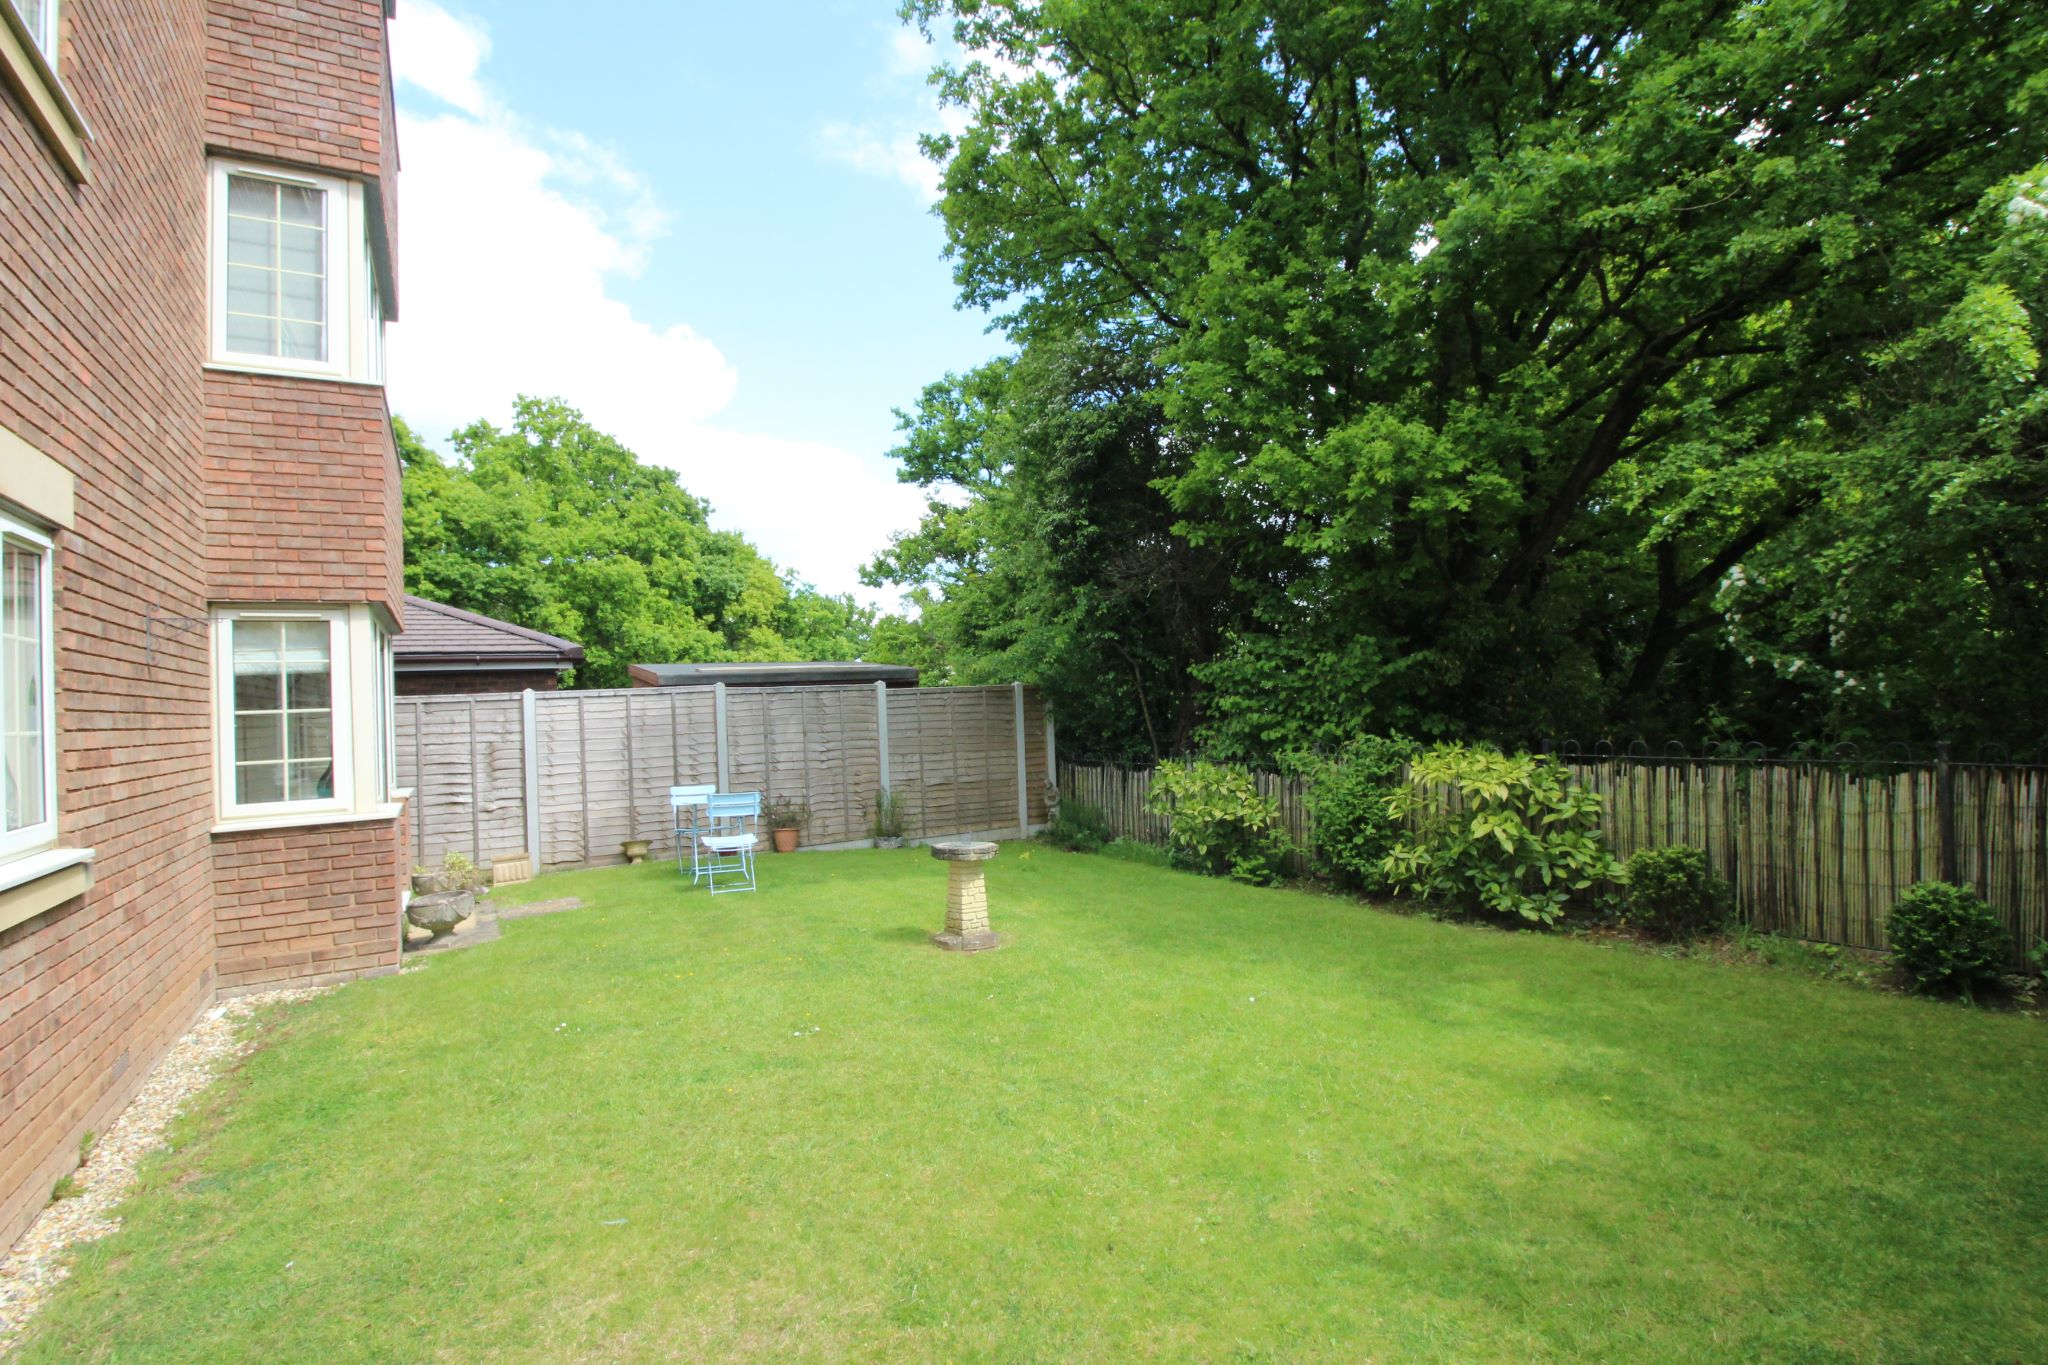 2 bedroom apartment flat/apartment For Sale in Solihull - Photograph 11.